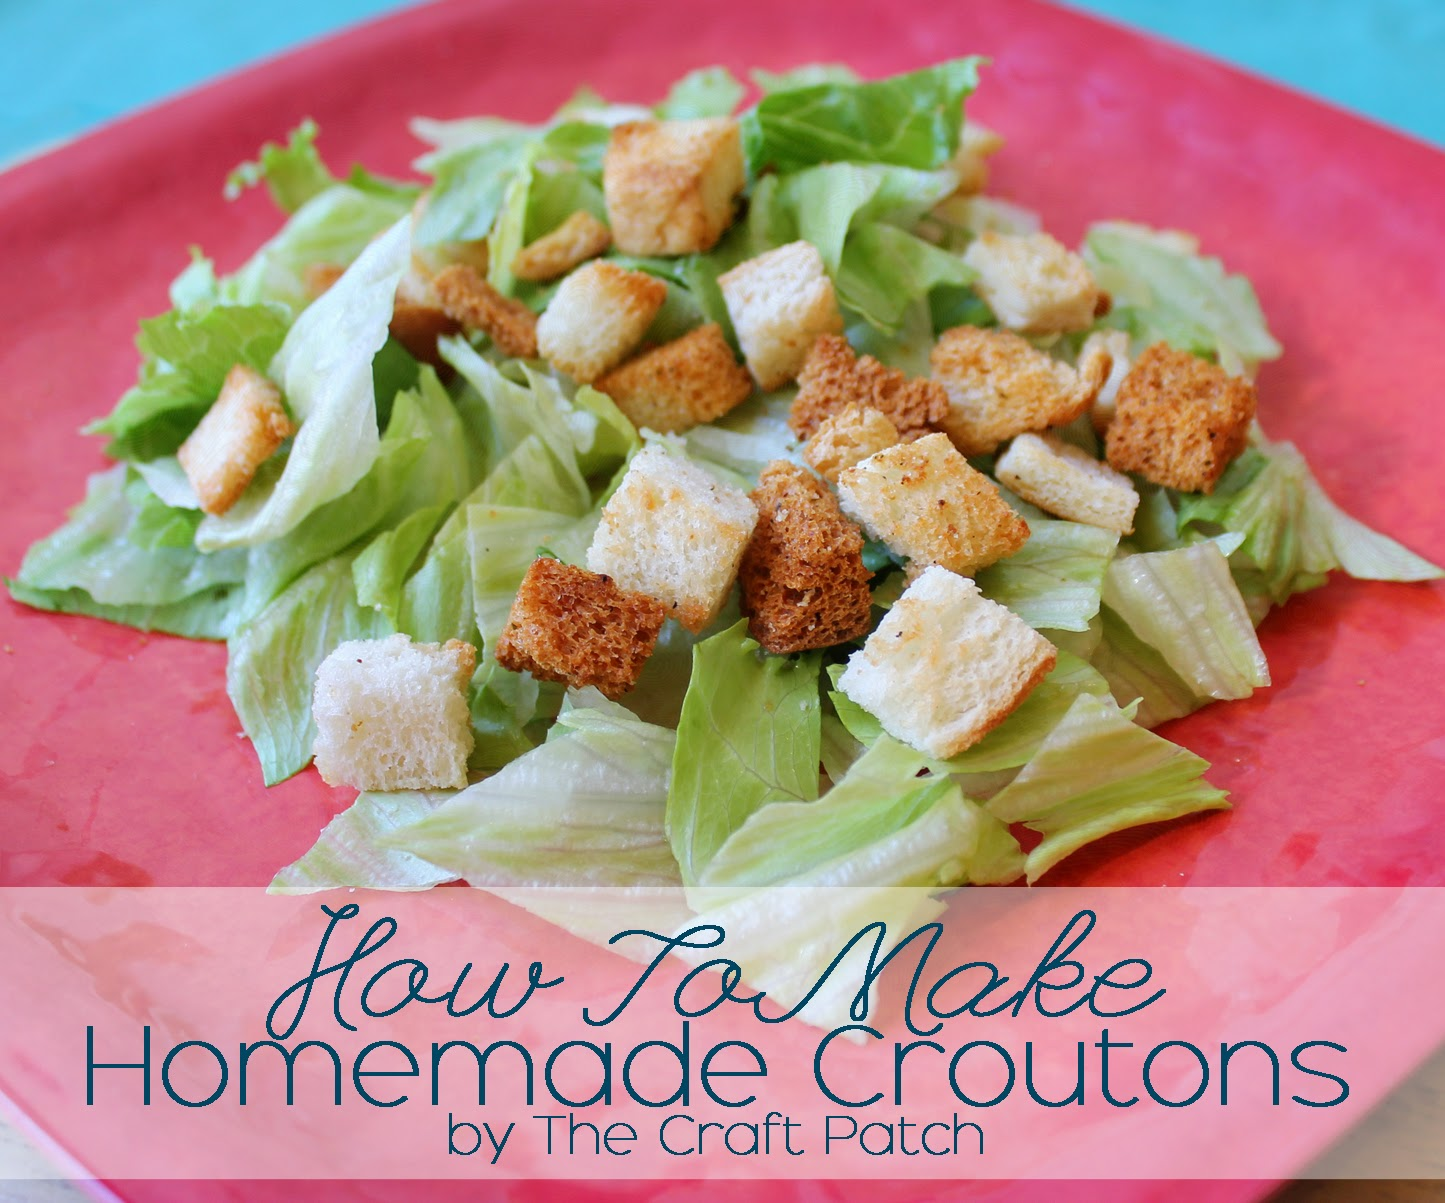 The Craft Patch: How To Make Homemade Croutons